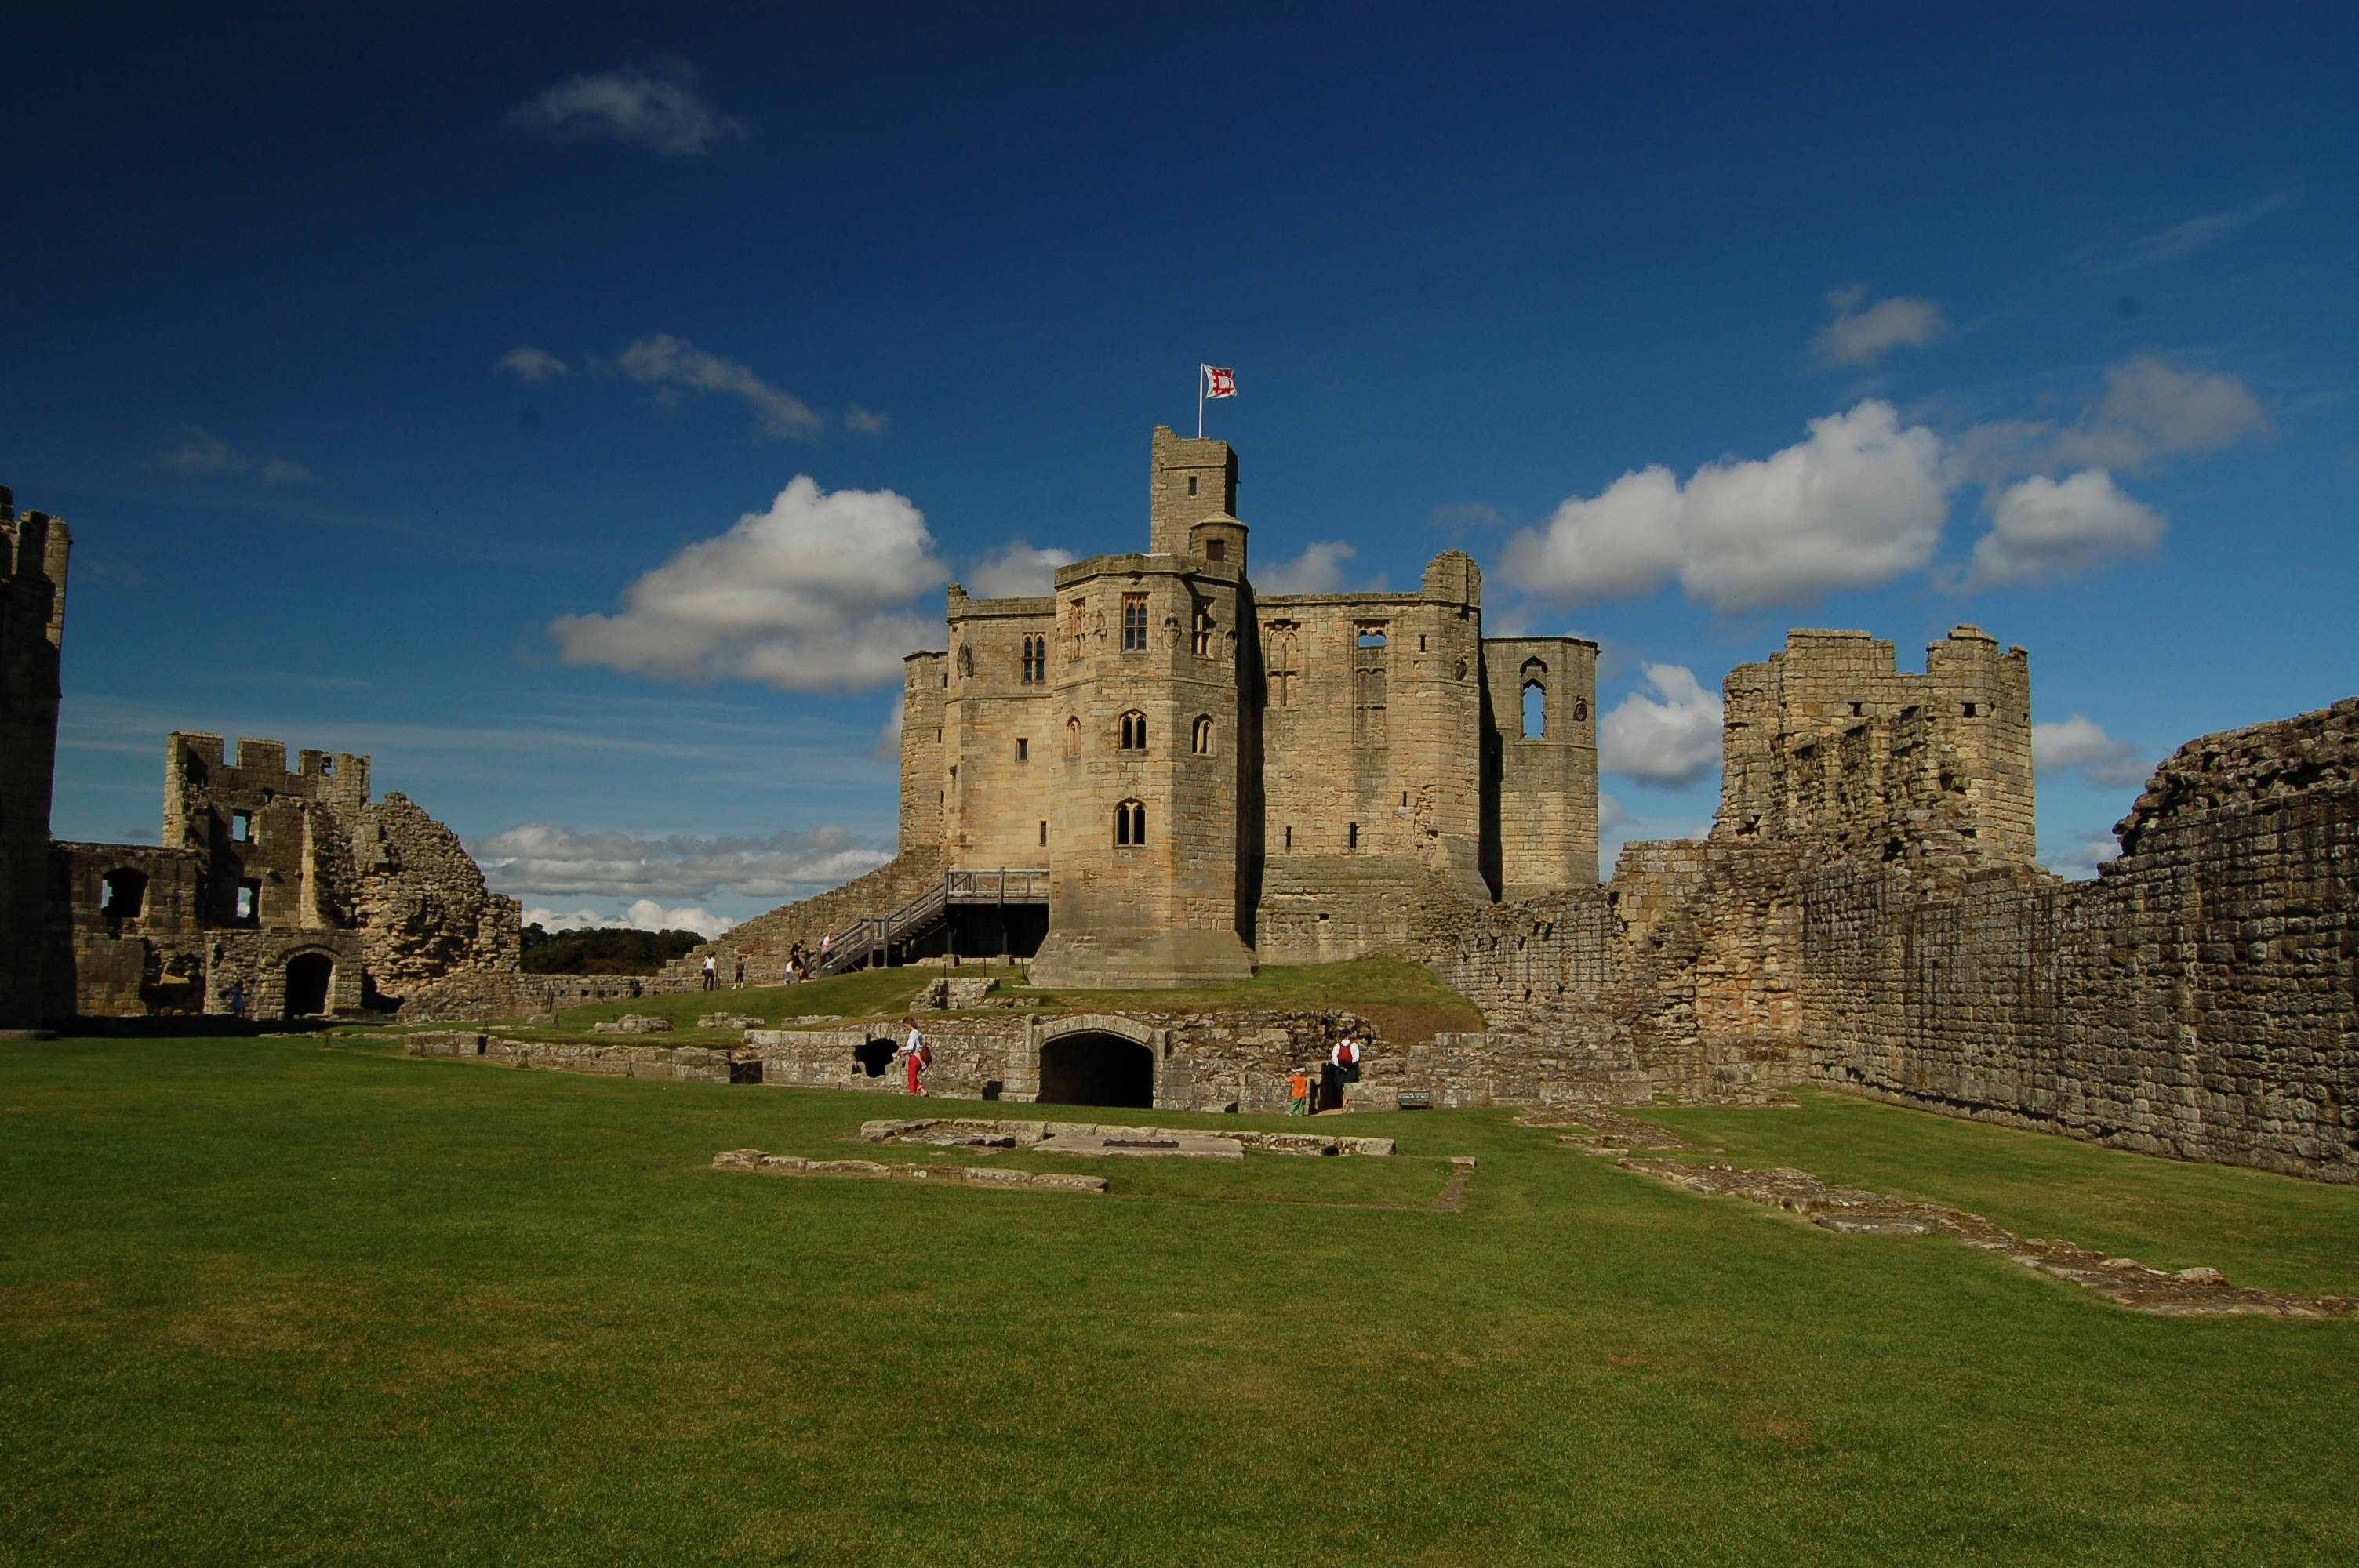 Warkworth Castle Wikipedia Early Row Wiring Diagram Defender Source